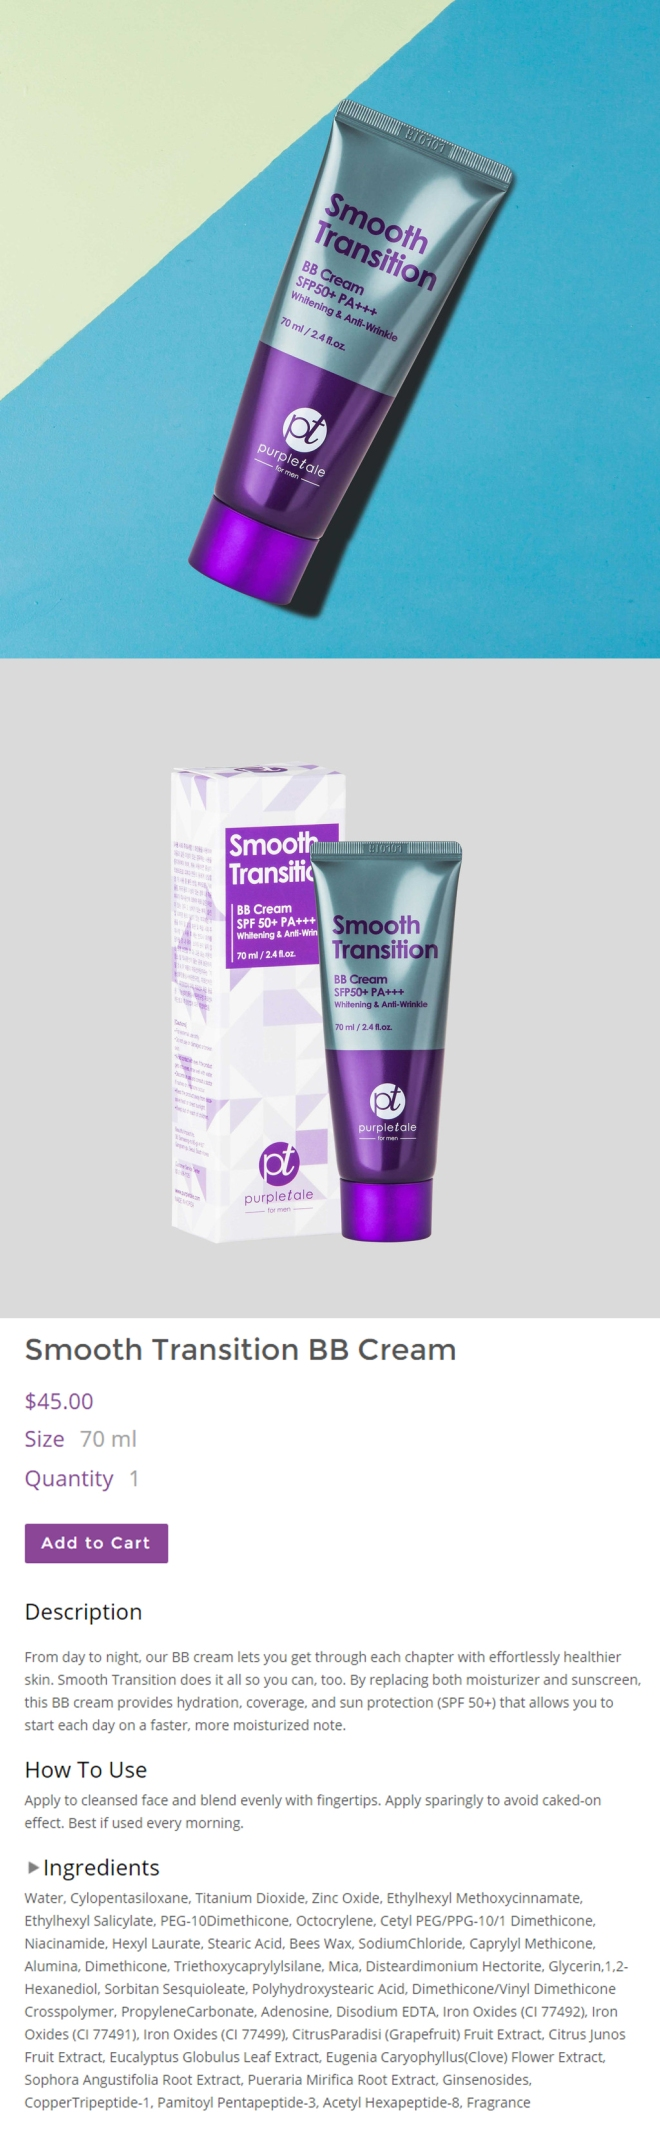 PurpleTale Smooth Transition BB Cream SPF50+ PA+++ (Product info).jpg